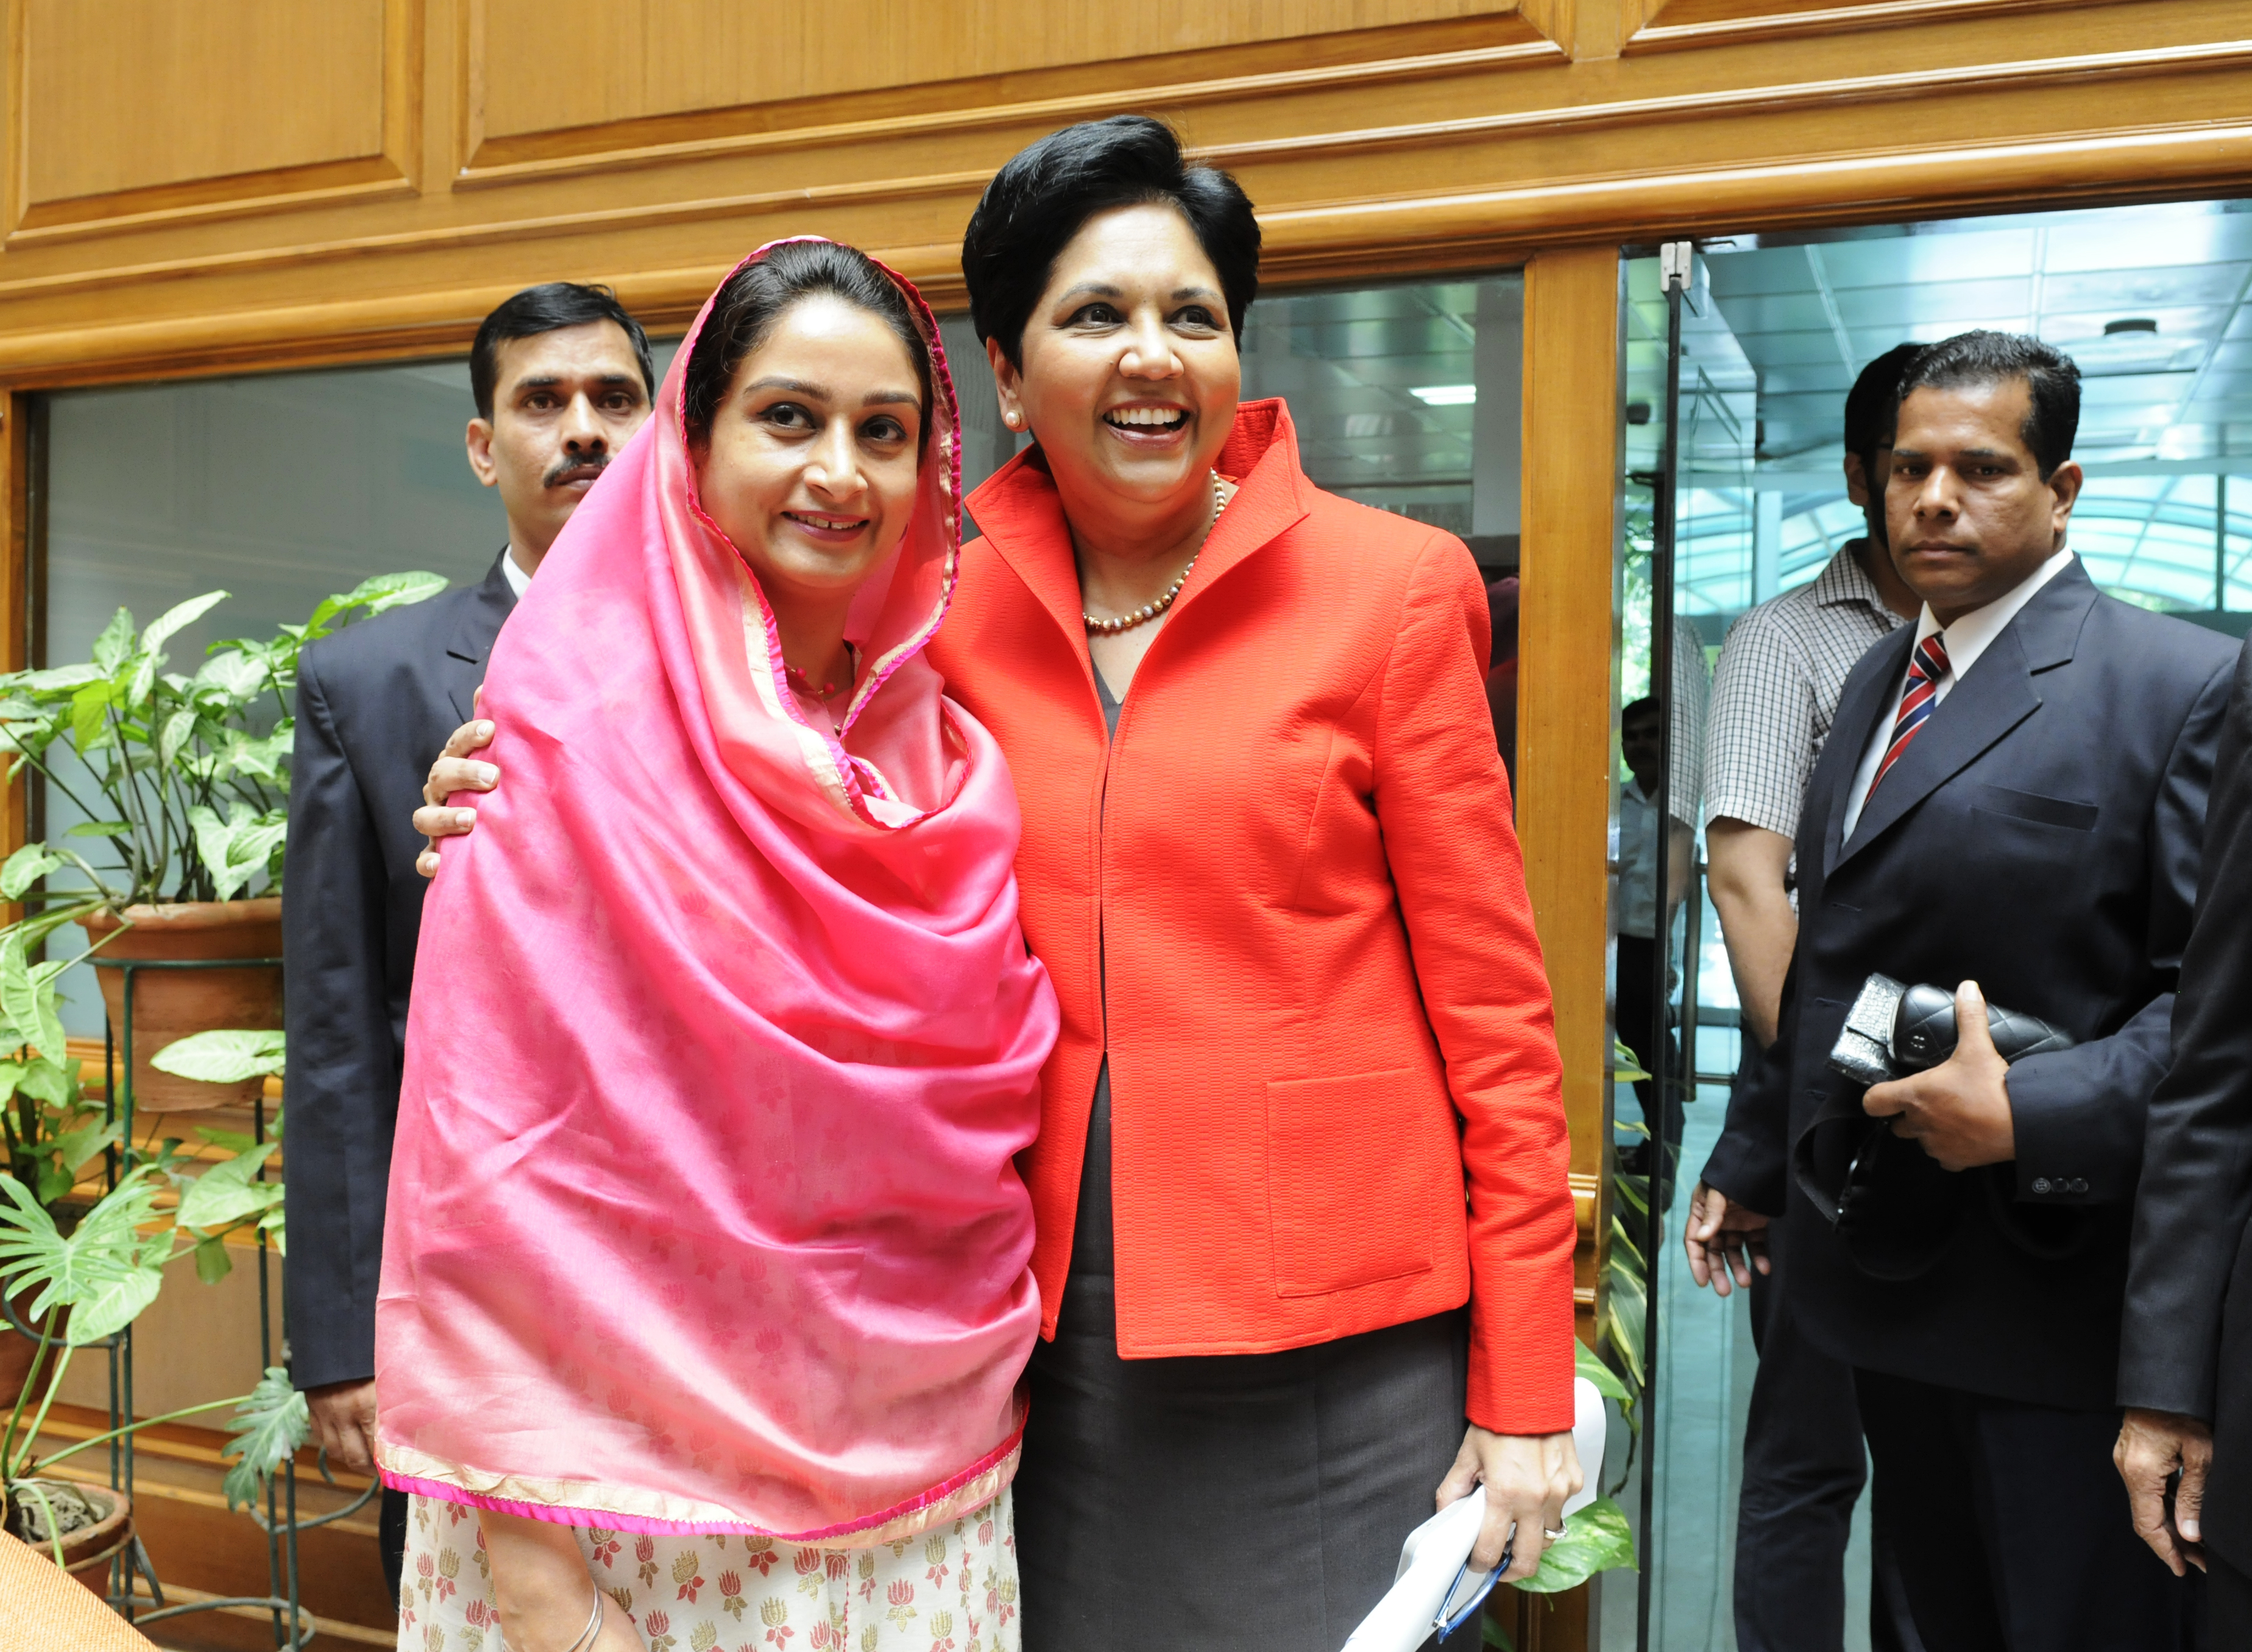 PepsiCo CEO Indra Nooyi, right, meets Food Processing Minister Harsimrat Kaur Badal in New Delhi on Aug. 26, 2014